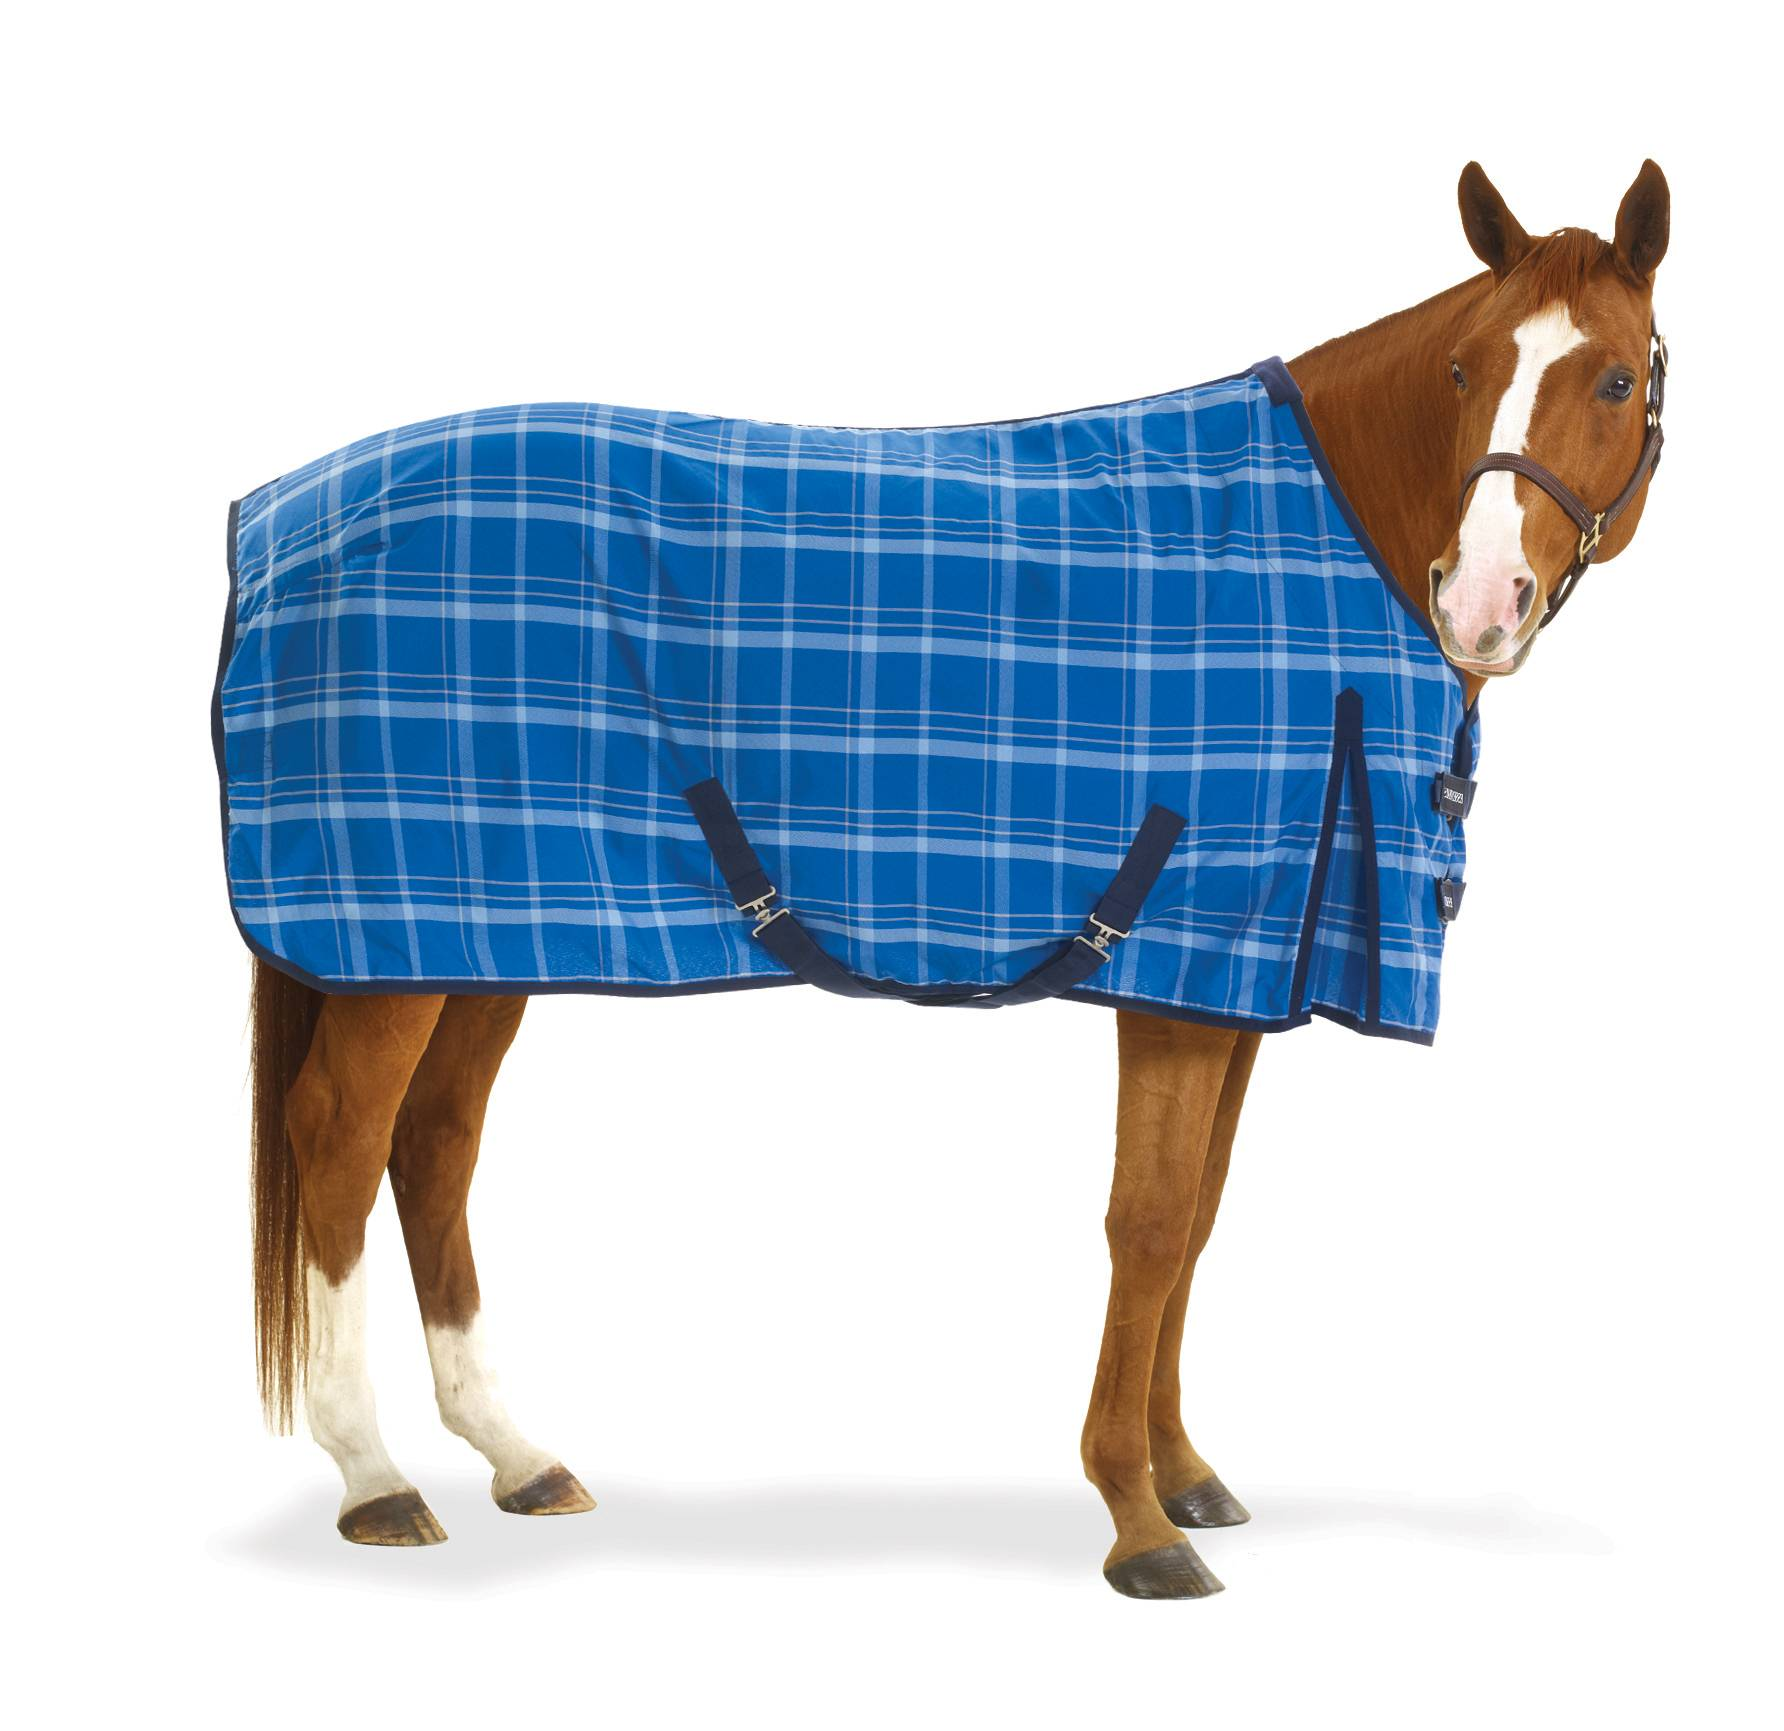 Equi-Essentials EZ-Care Lite Stable Sheet - Plaid